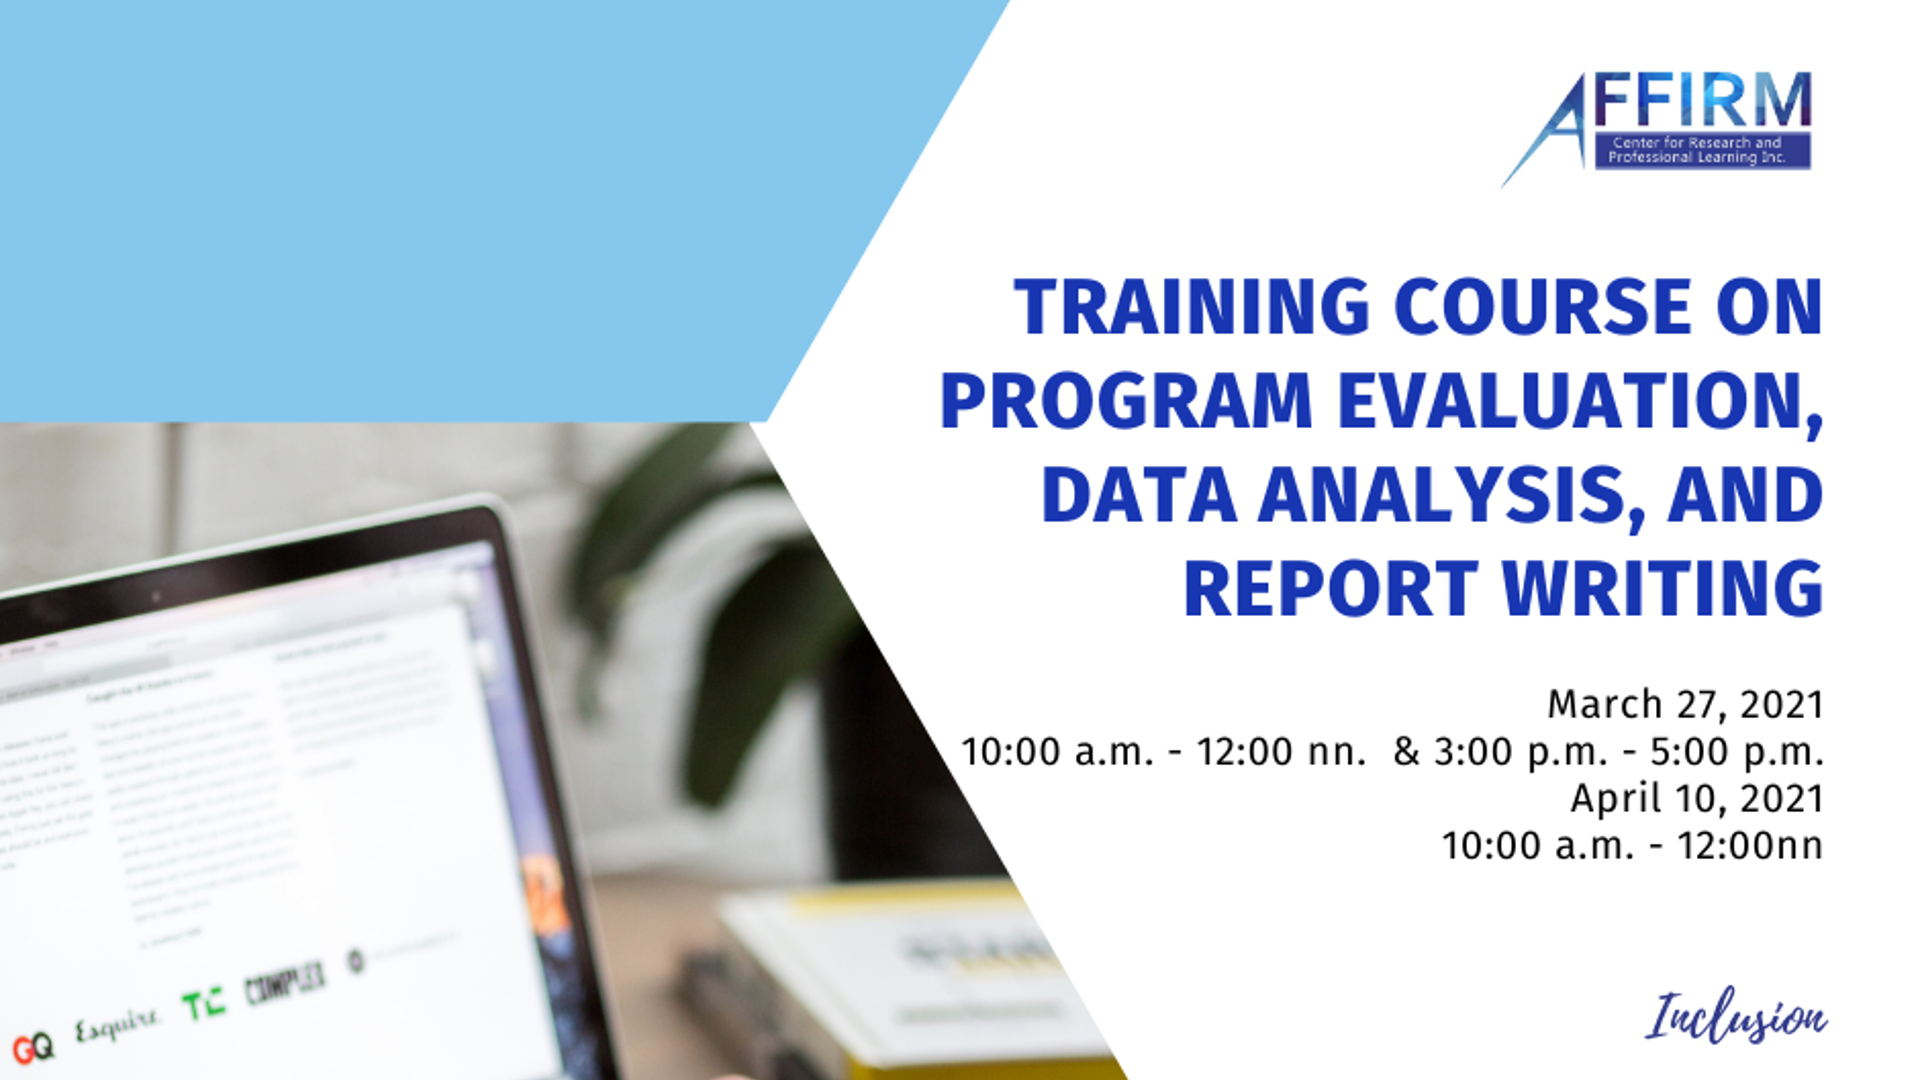 Training Course on Program Evaluation, Data Analysis, and Report Writing